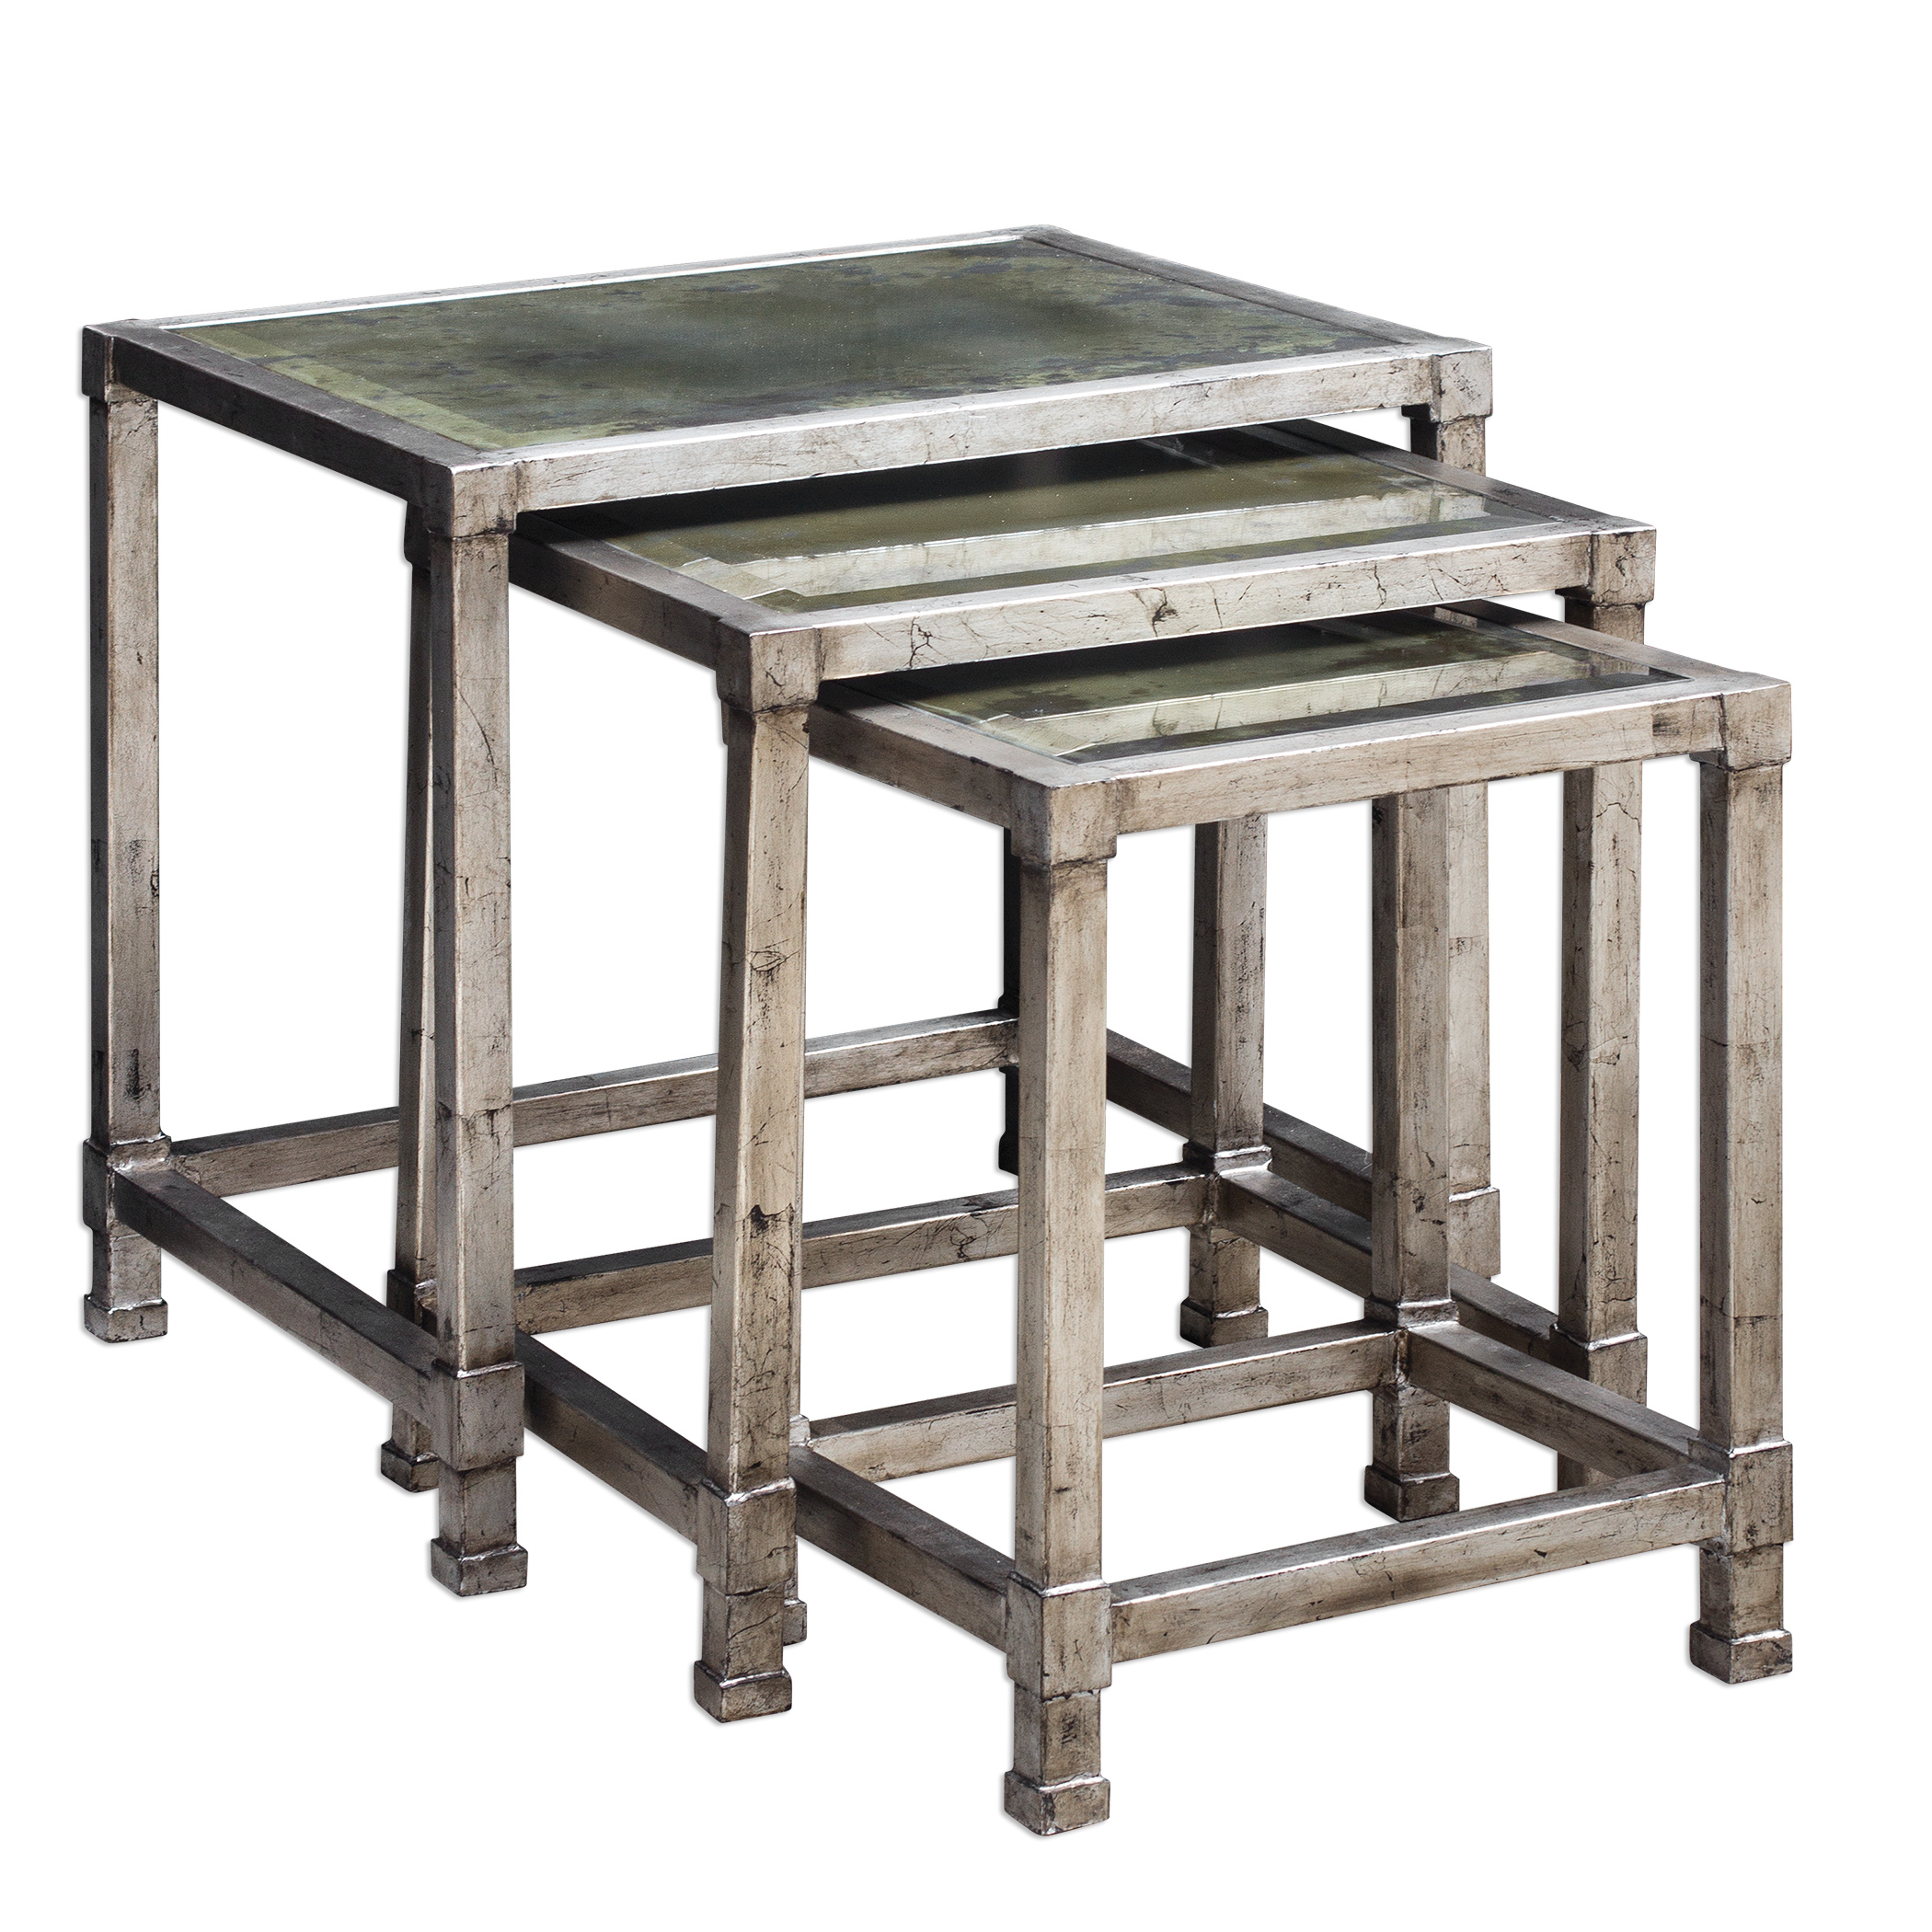 Accent Furniture - Occasional Tables Keanna Antiqued Silver Nesting Tables, S/3 by Uttermost at Factory Direct Furniture